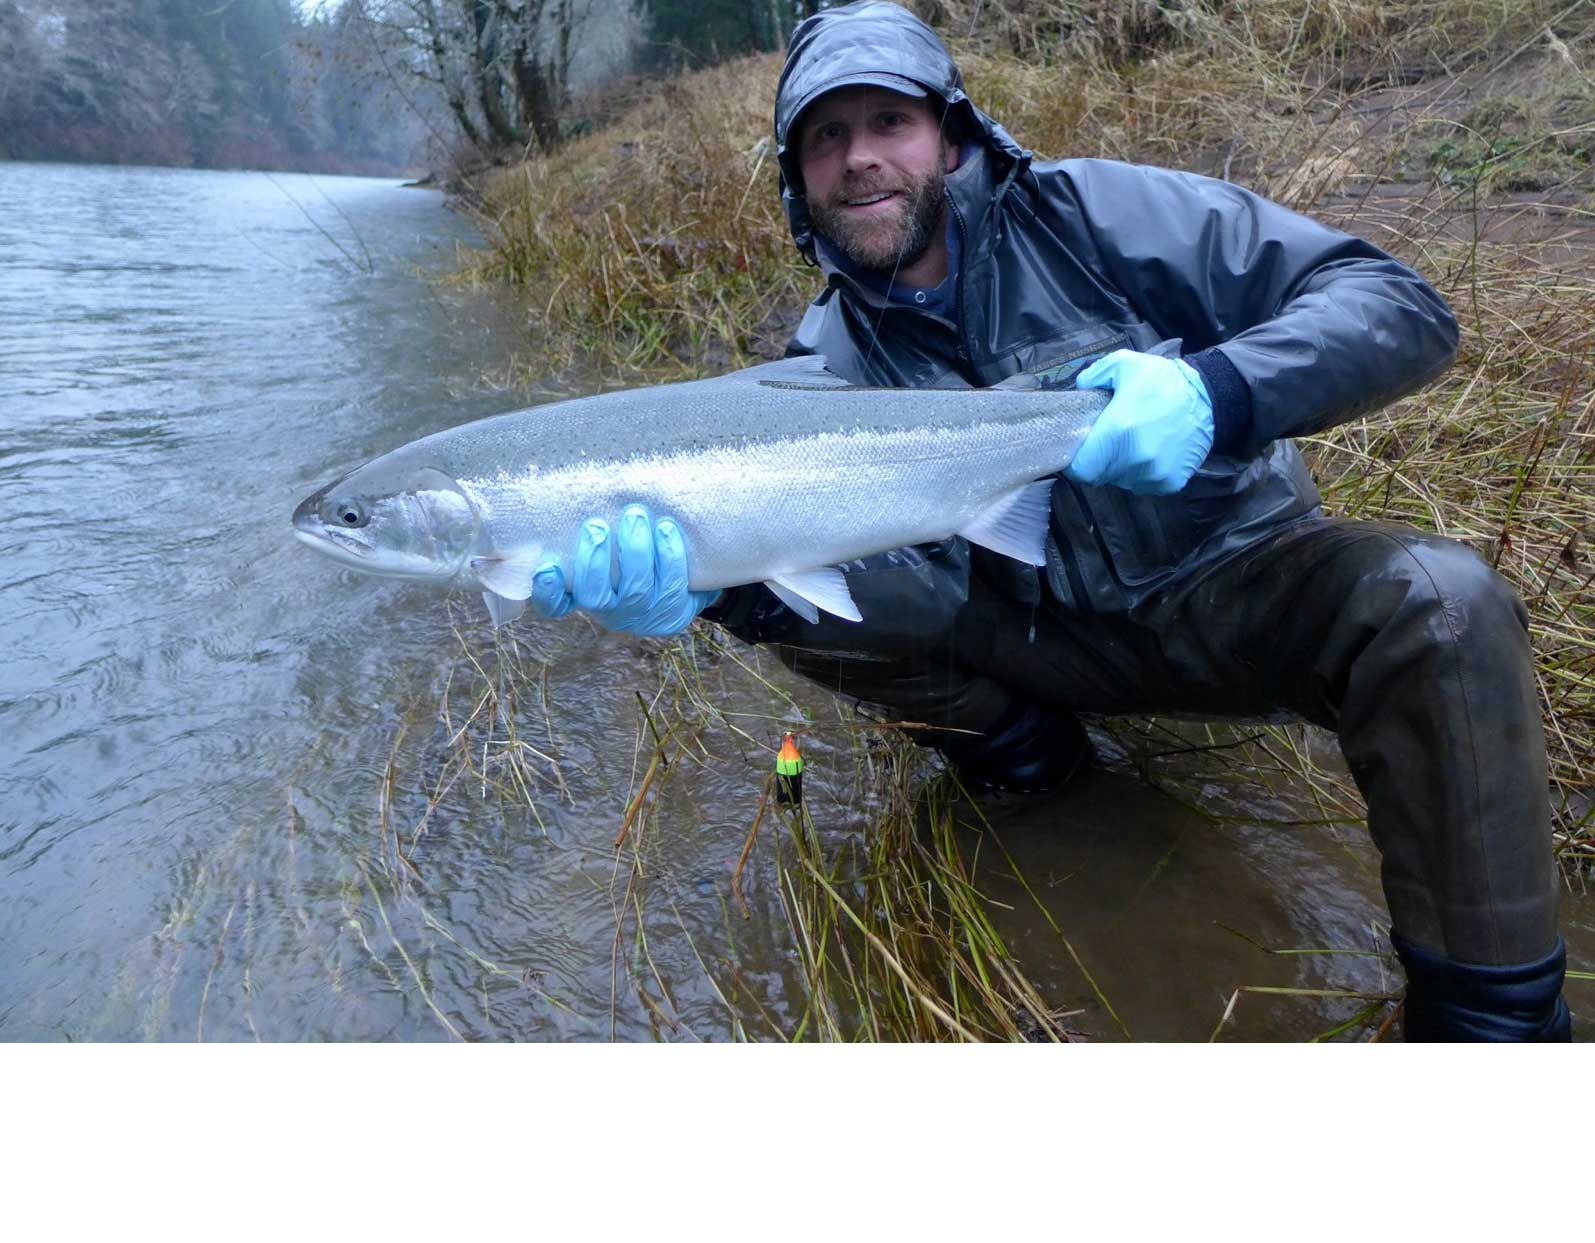 Oregon steelhead best fishing guides willamette valley for Oregon steelhead fishing